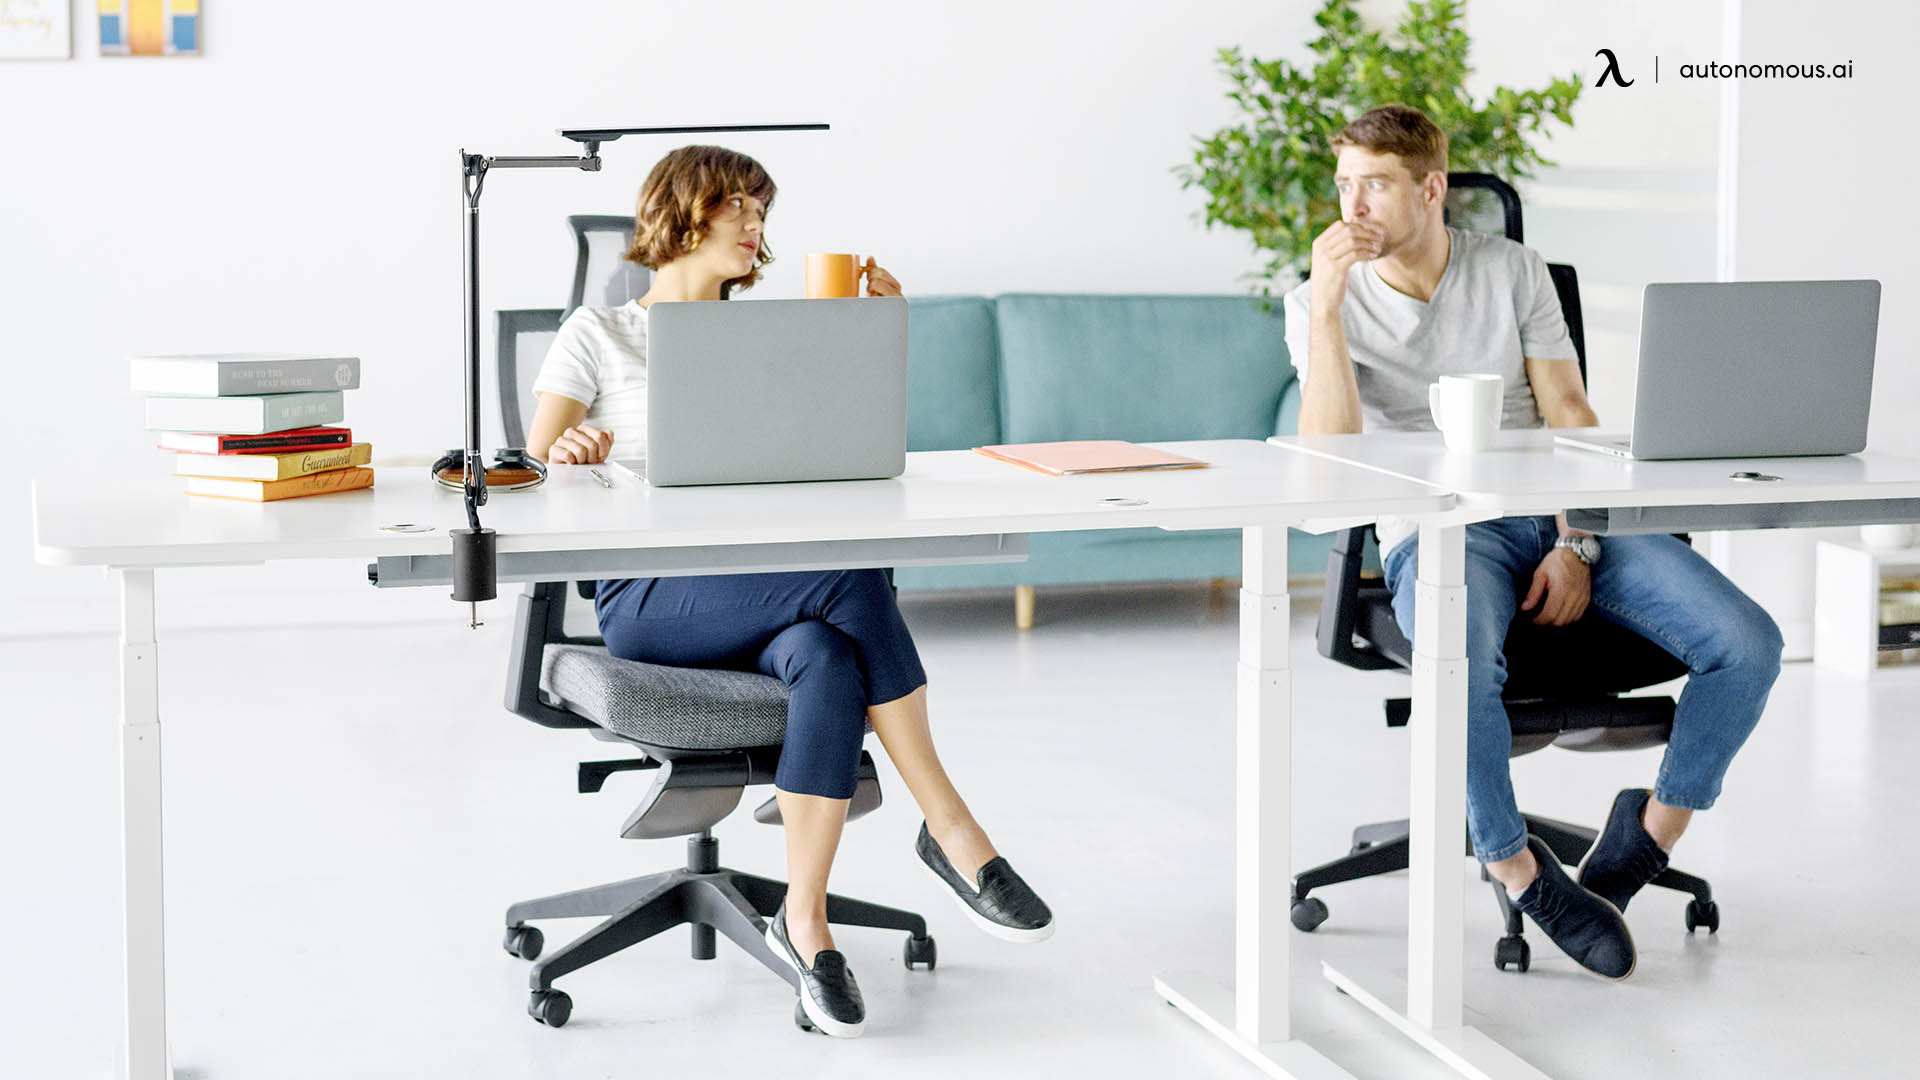 Ergonomic chair to take rests